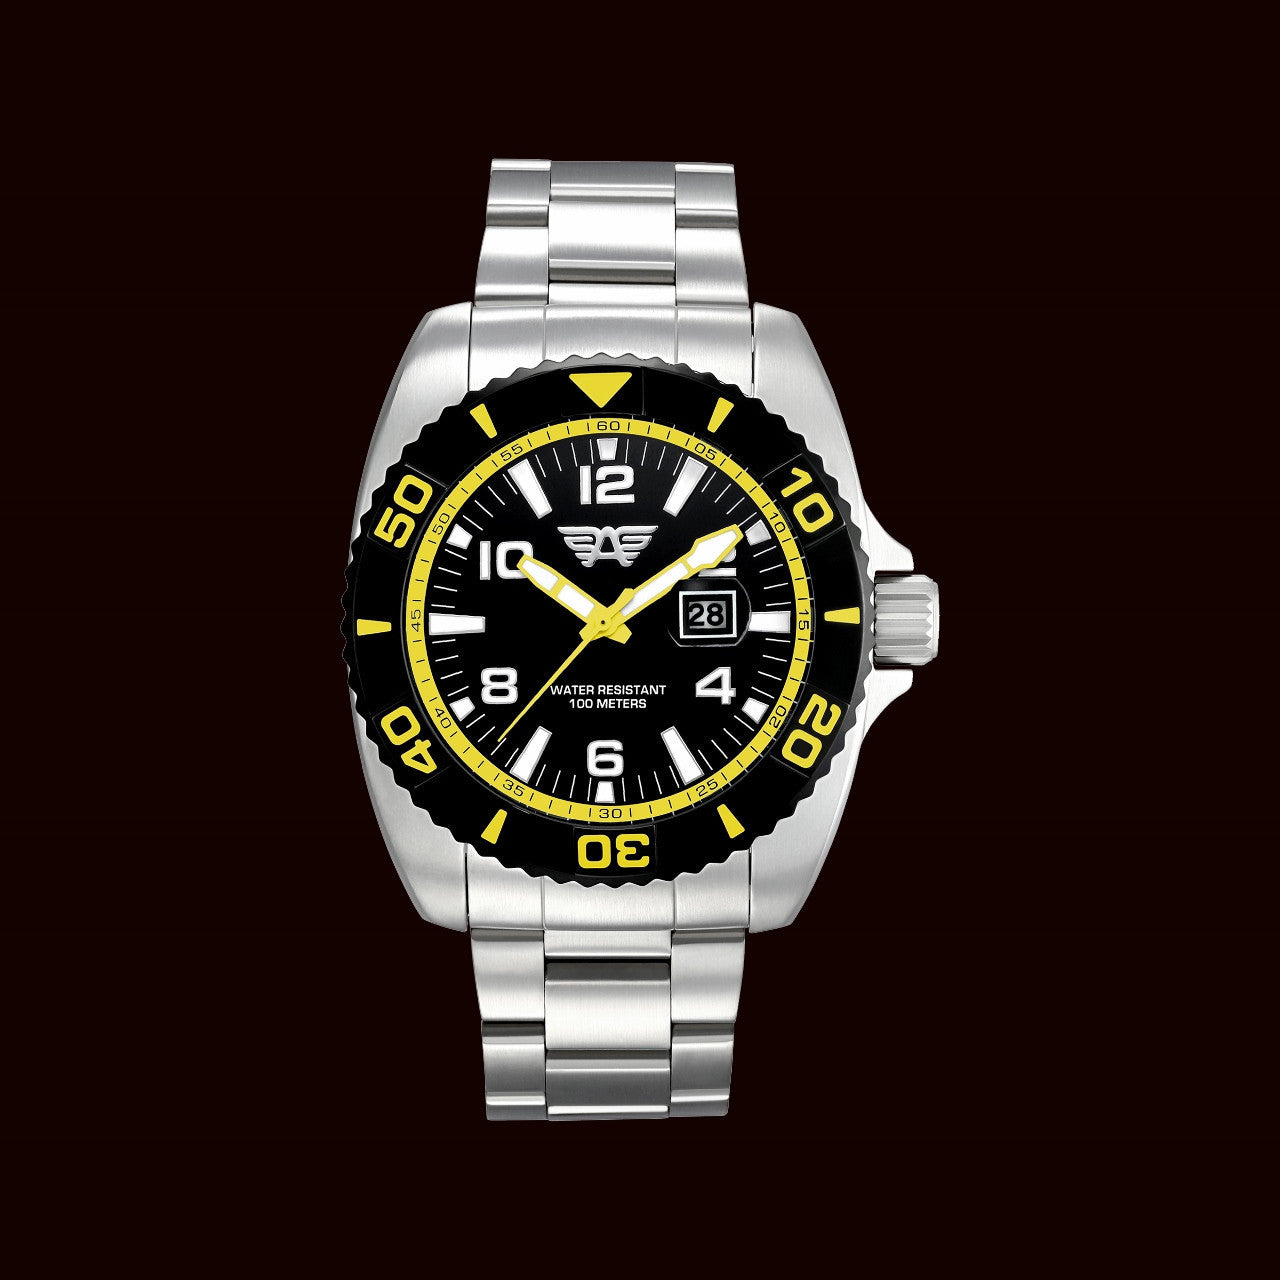 Aquarius Watches ADZ-2010-05